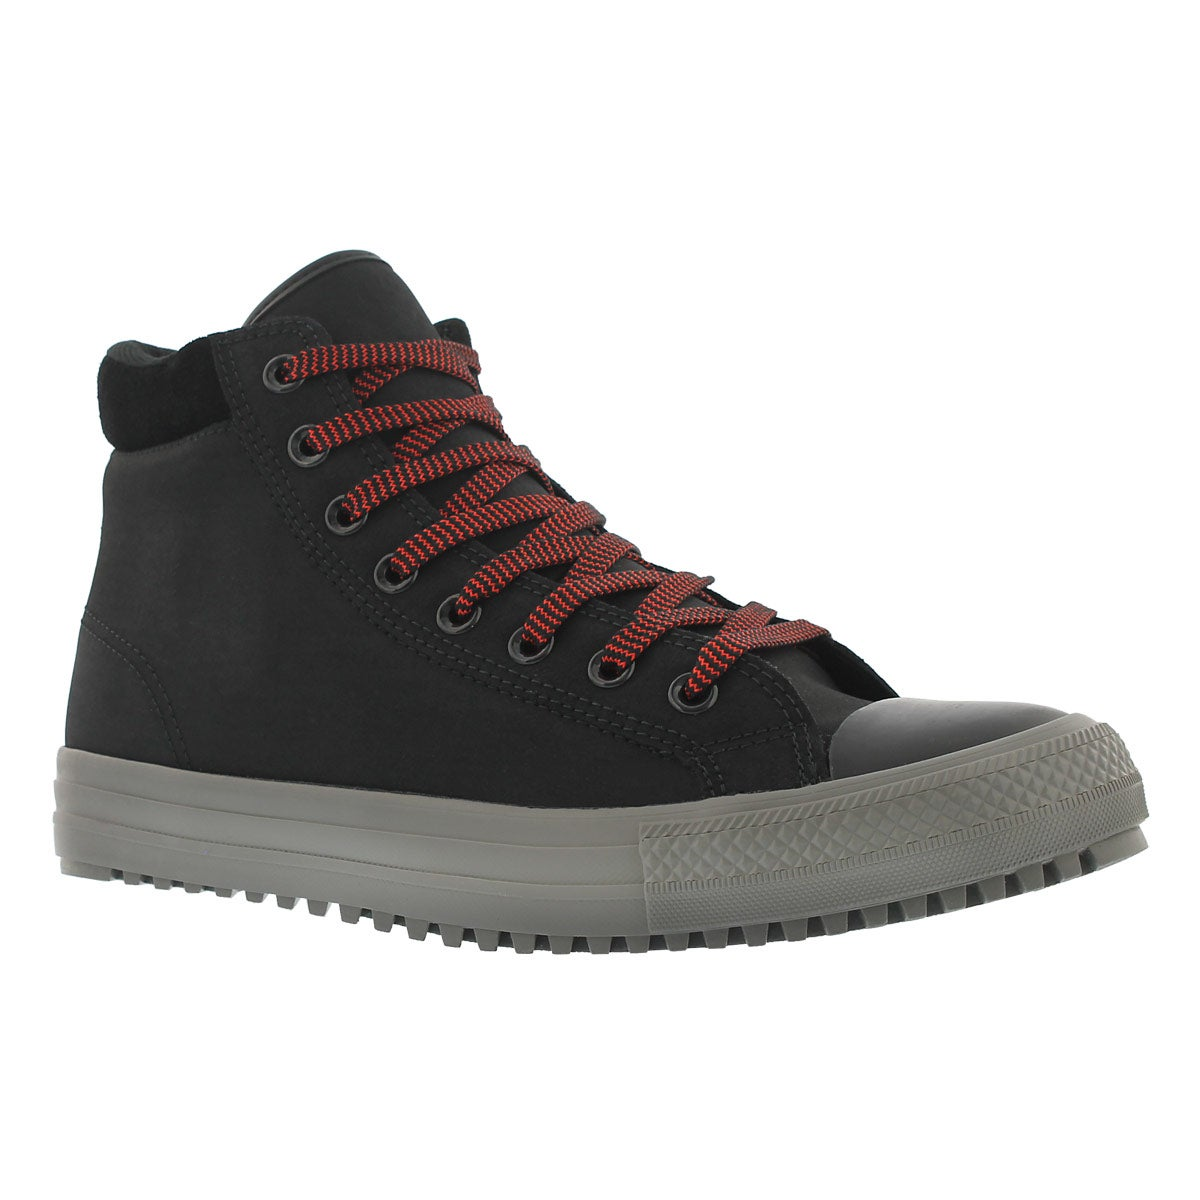 Bottine CTA/S Converse PC C, cuir nr, ho